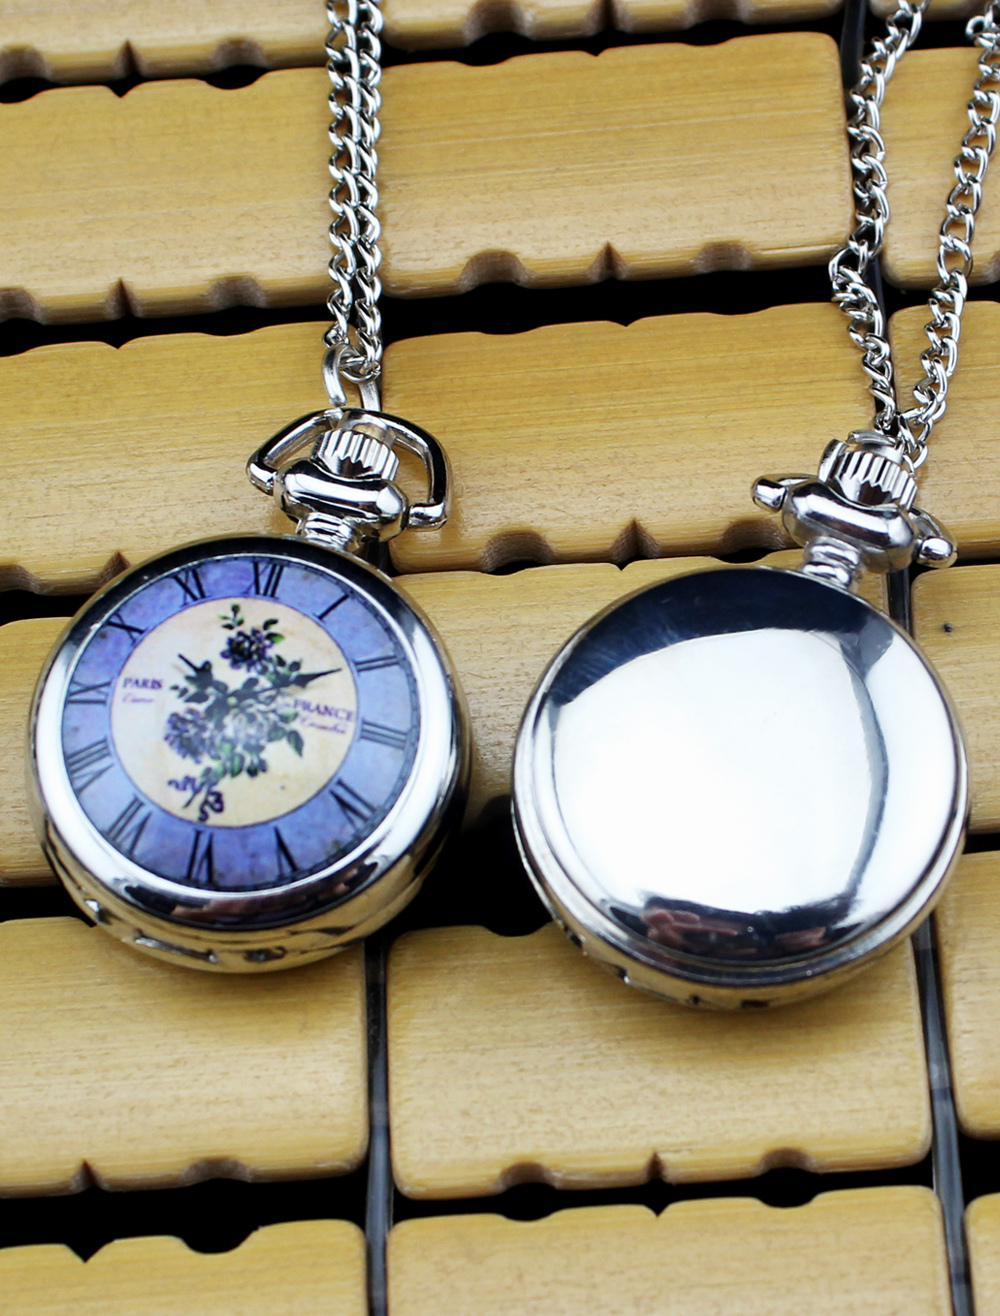 Sweet Wedding Personalized Gift Of Pocket Watch